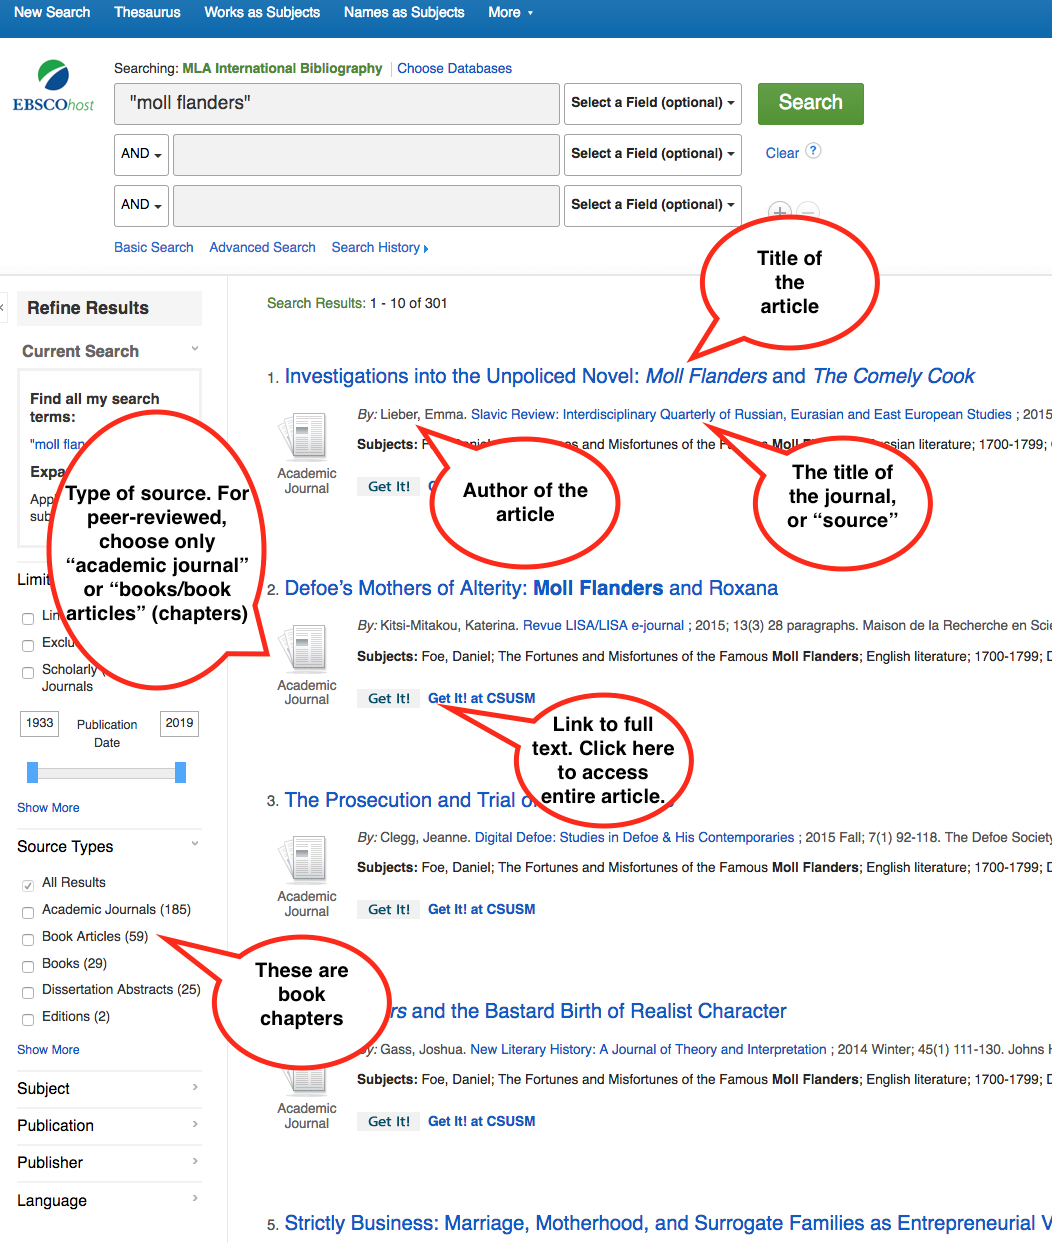 "Annotated screenshot of an MLA International Bibliography search results page for search terms ""moll flanders"""